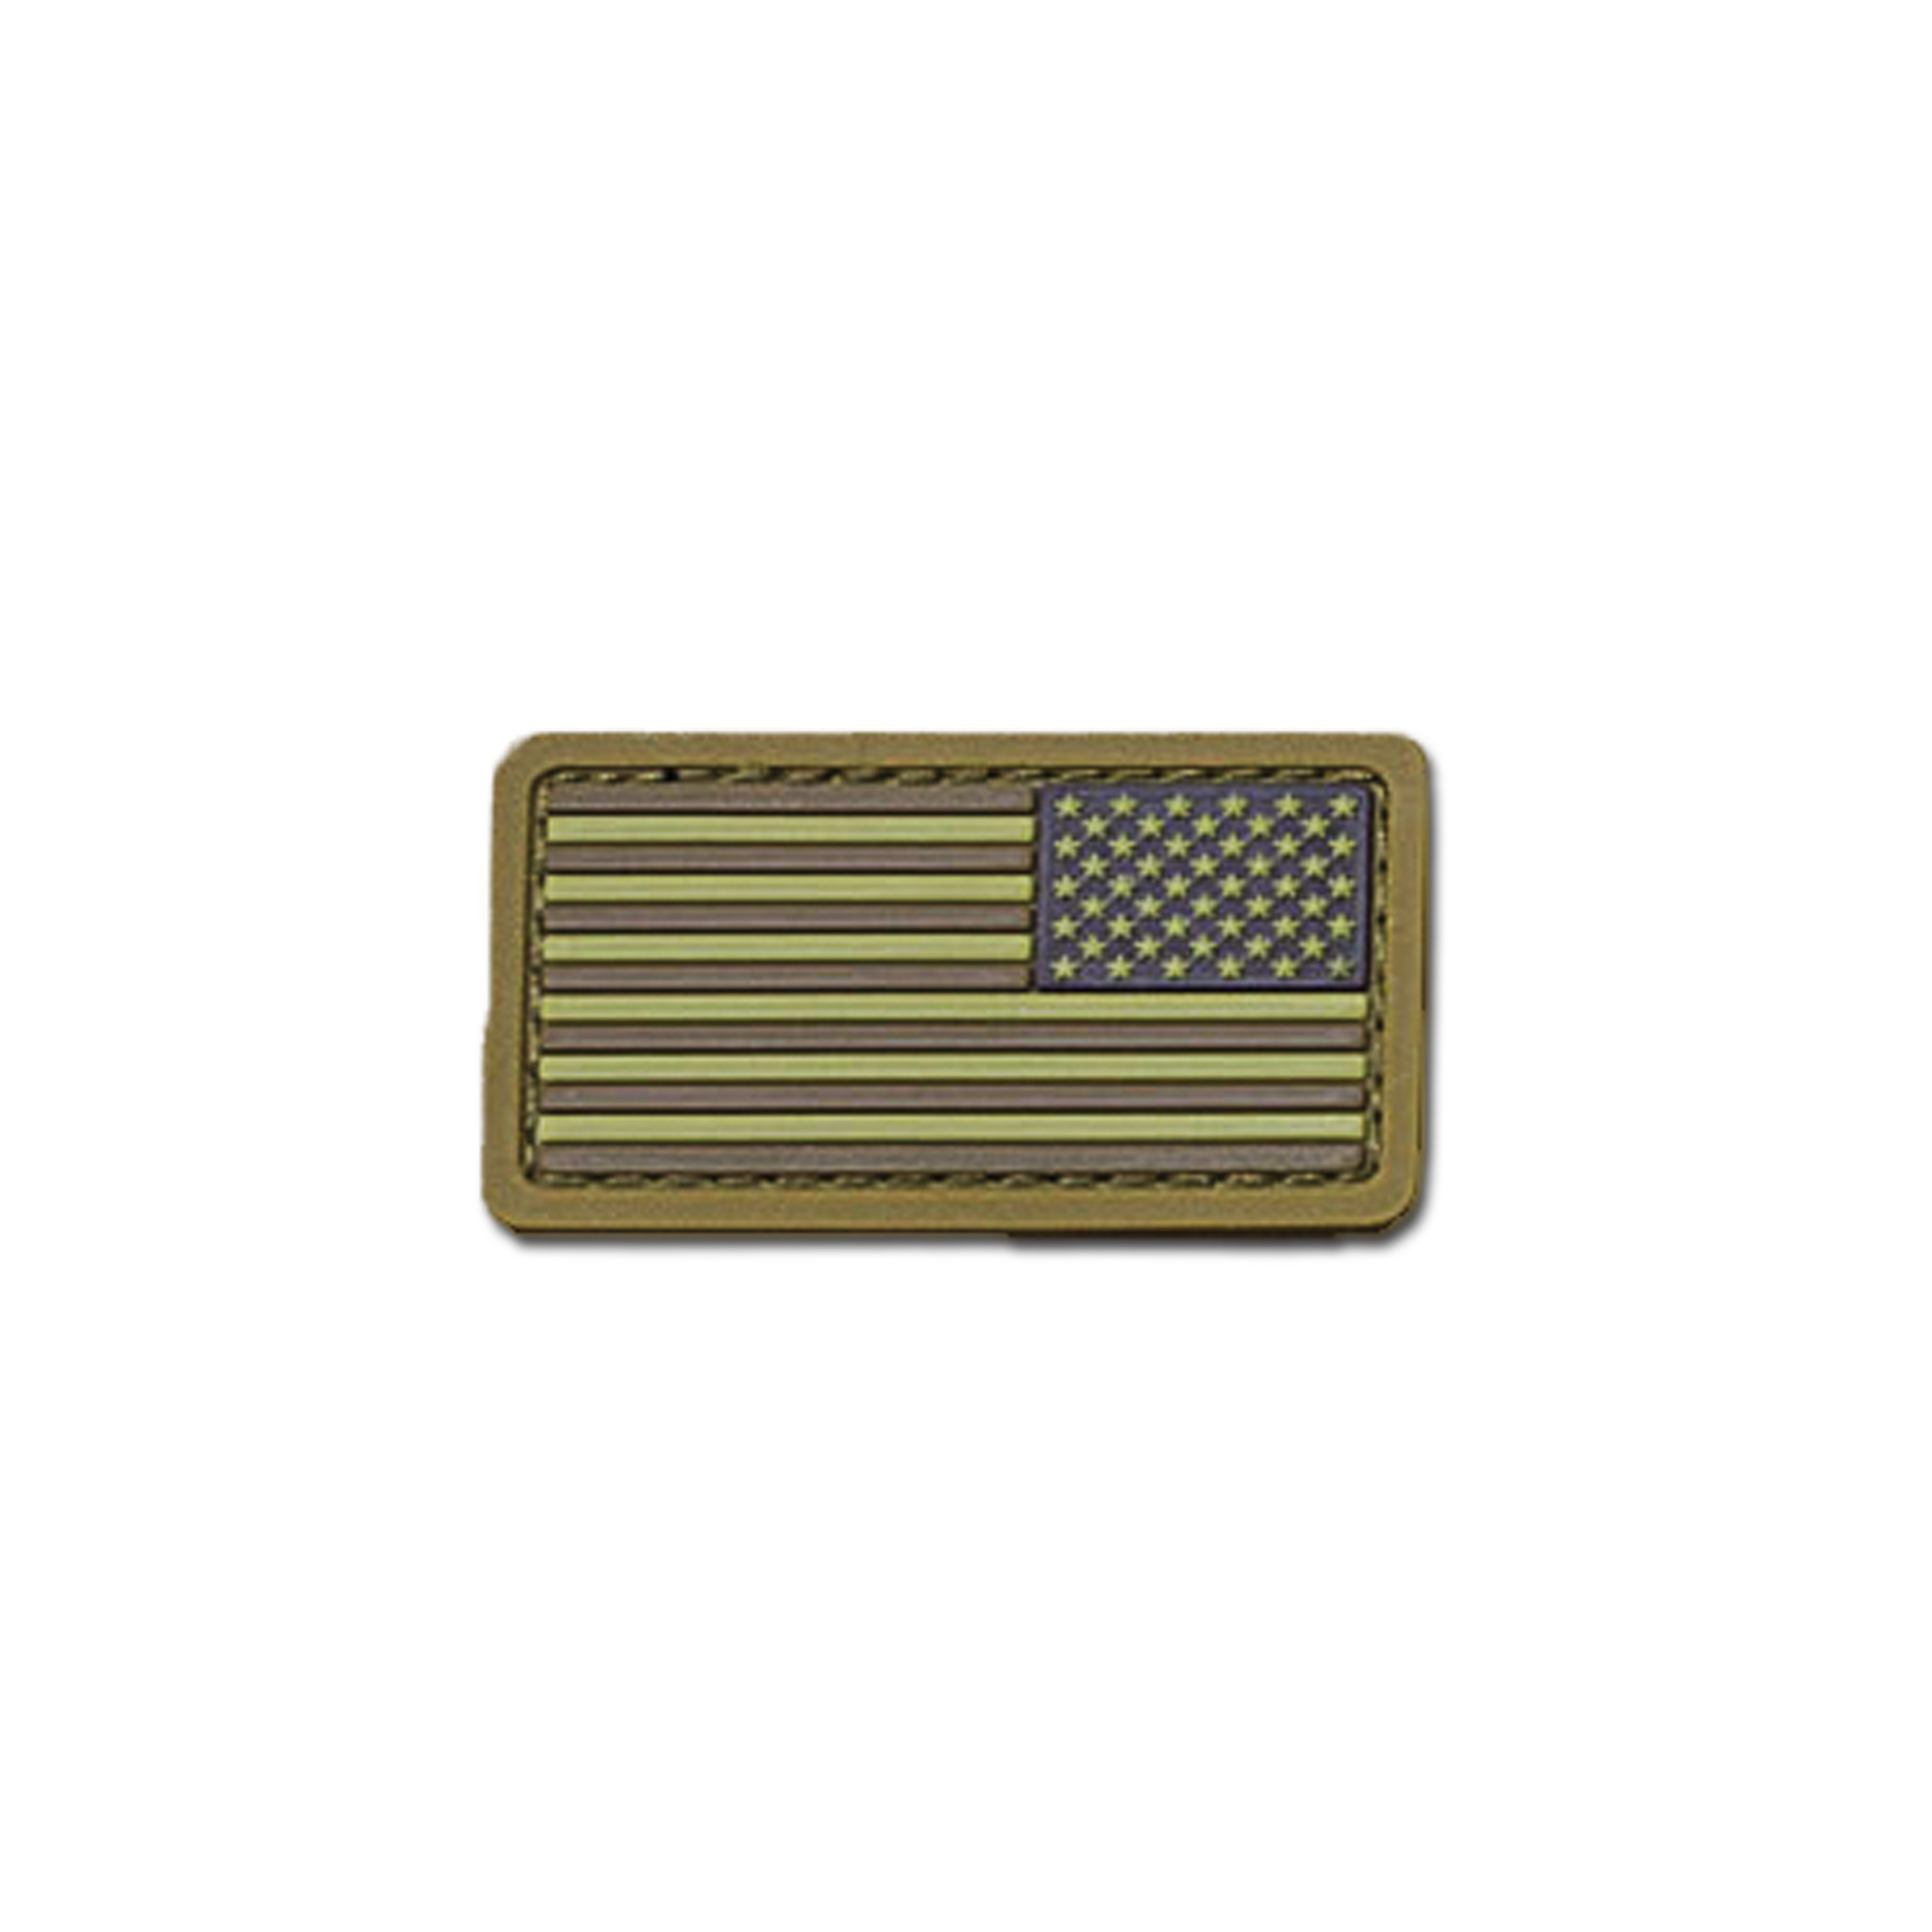 MilSpecMonkey Patch U.S. Flag Mini REV PVC desert